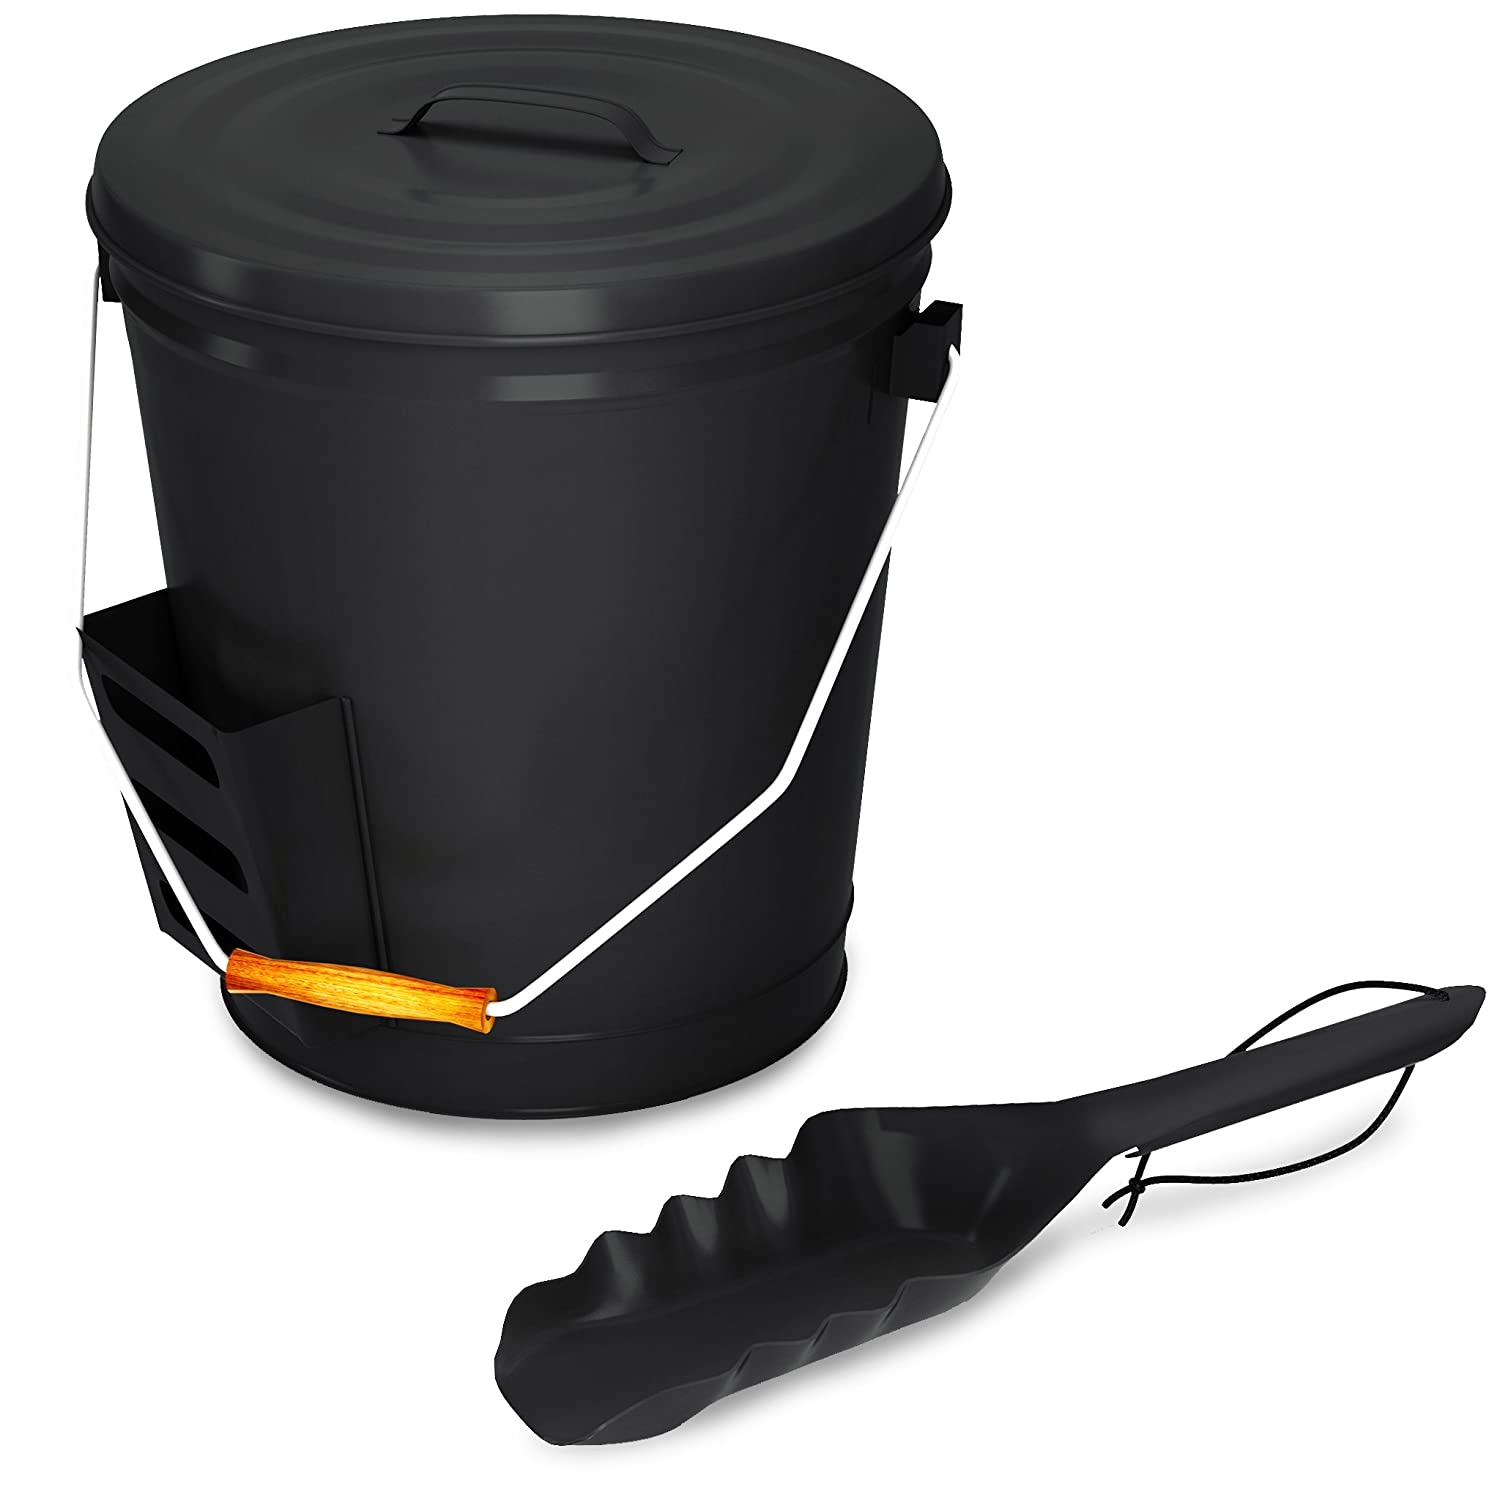 Buy Black Ash Bucket with Lid and Shovel For Fireplace - Great Wood Stove Ashes Accessories: Chimney Caps - Amazon.com ? FREE DELIVERY possible on eligible purchases